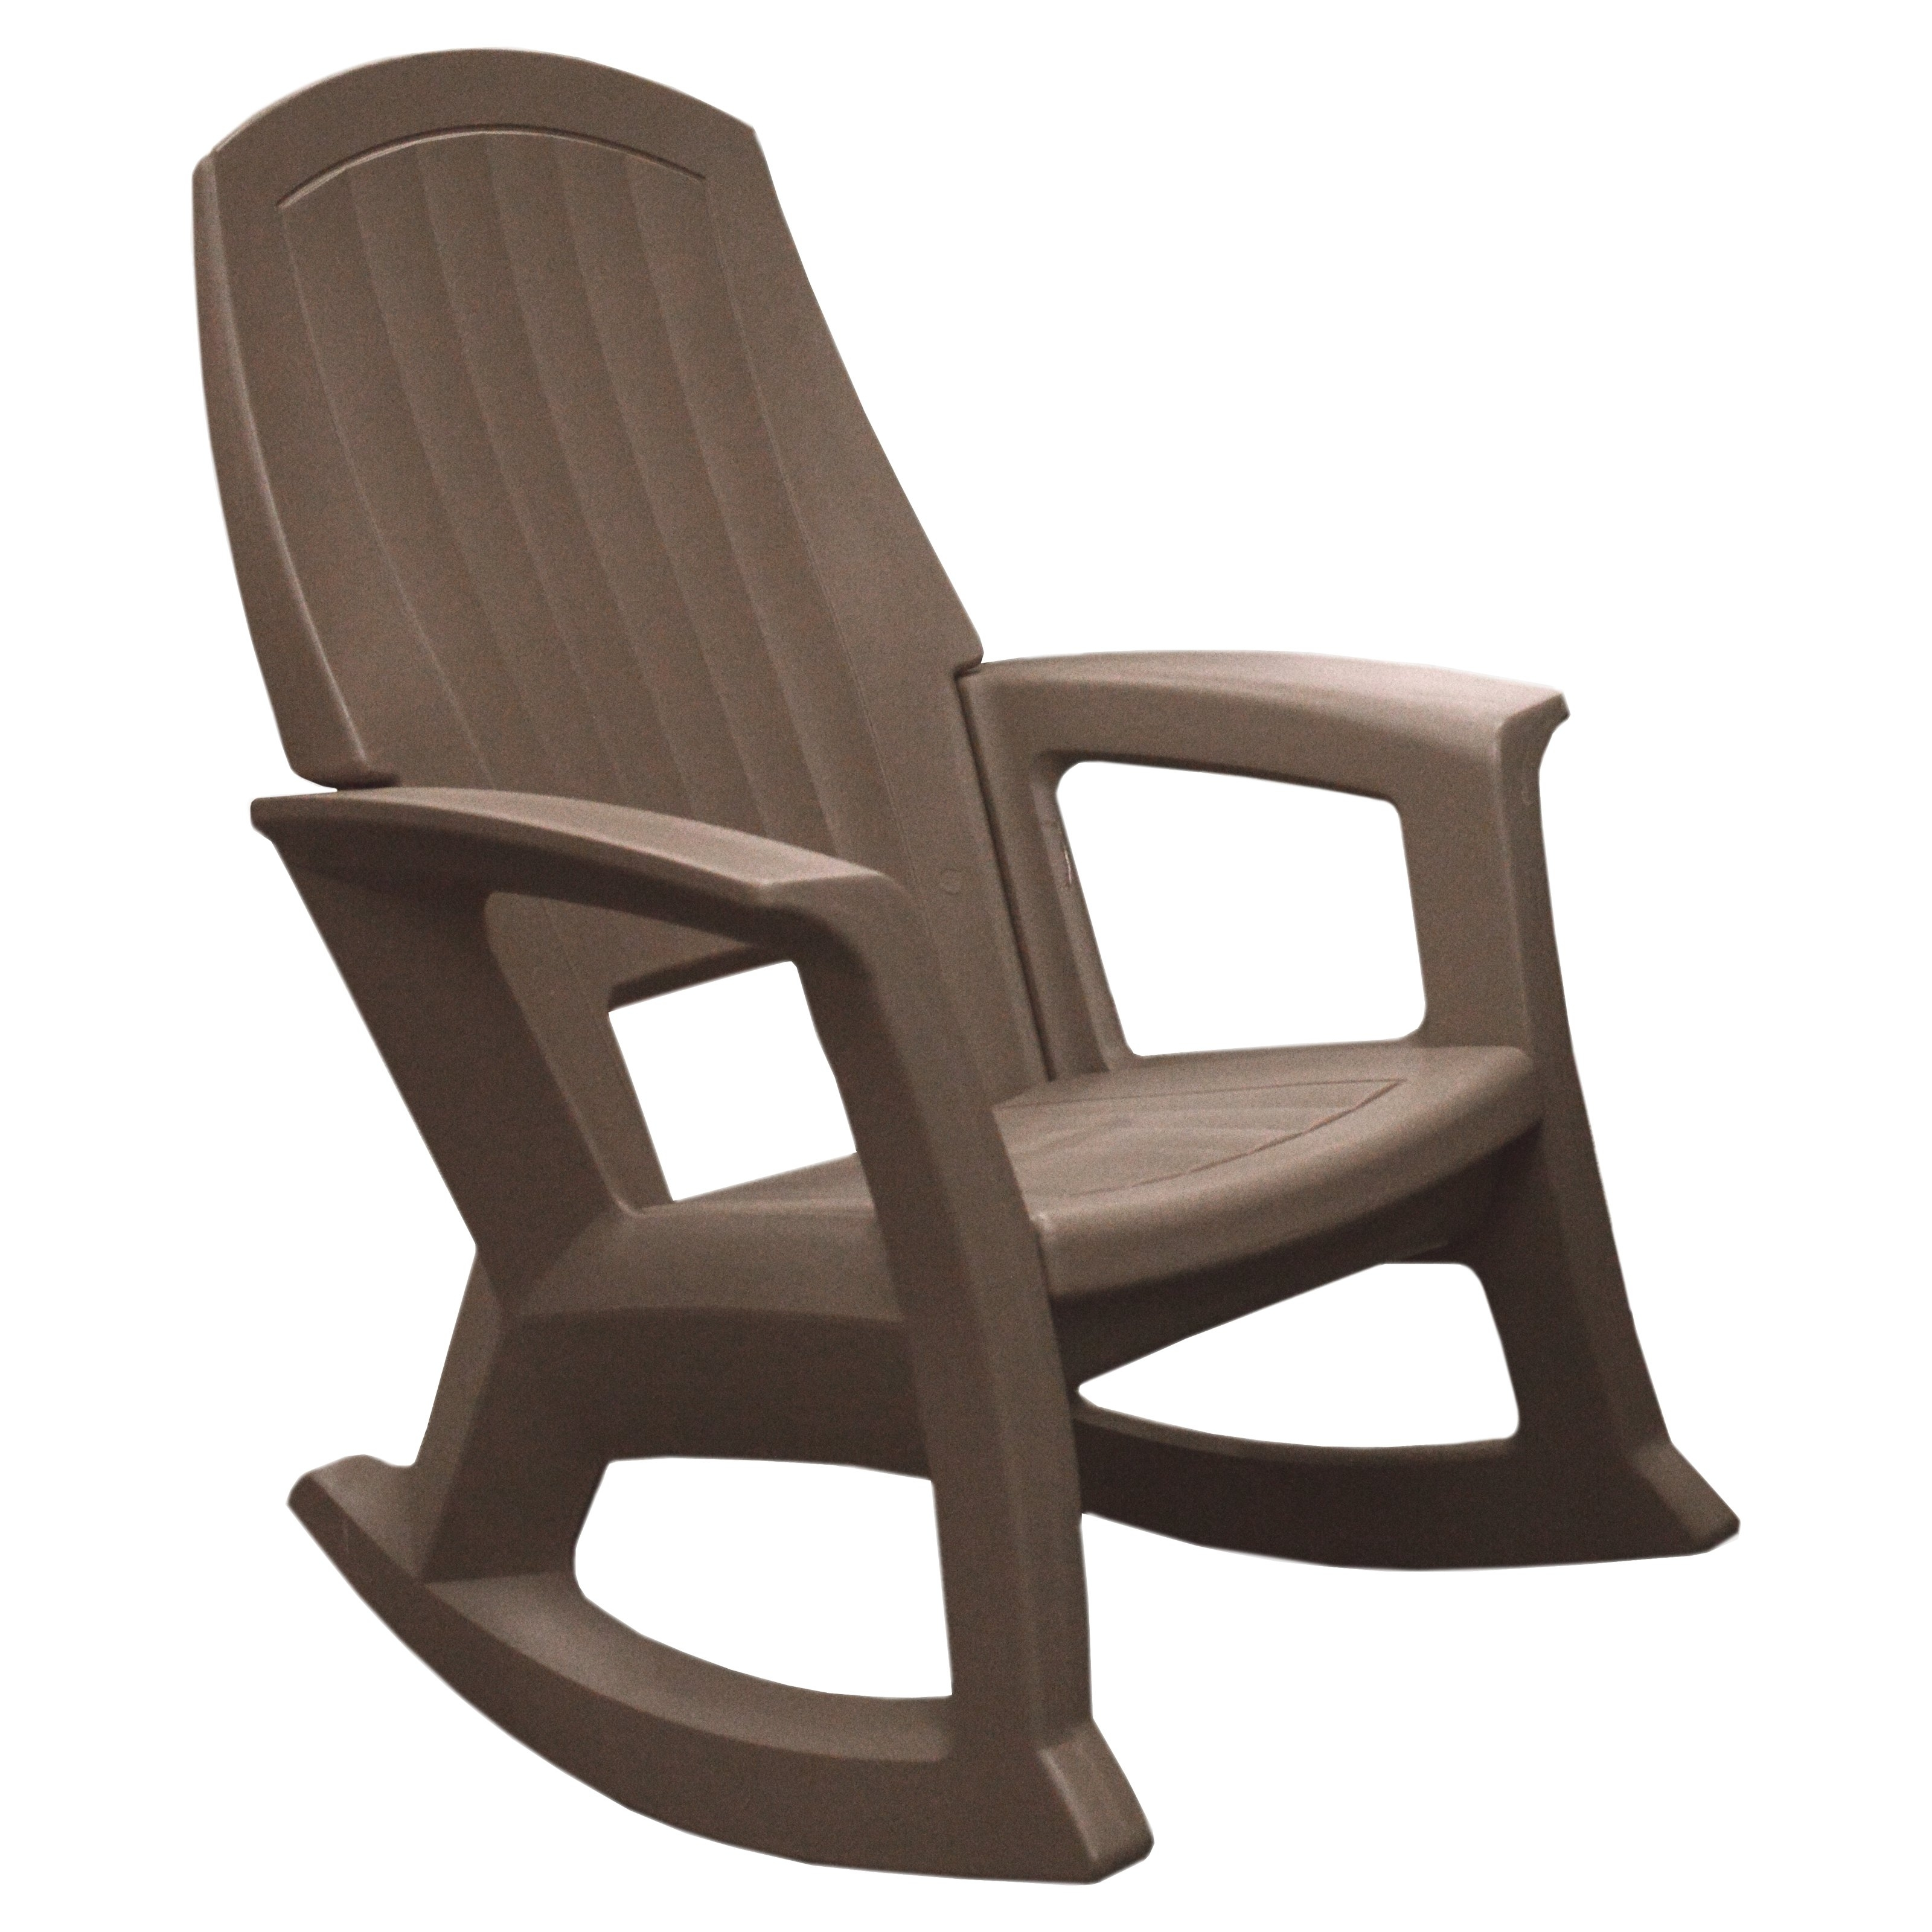 Best And Newest Semco Outdoor Patio Resin Rocking Chair – Outdoor Designs With White Resin Patio Rocking Chairs (View 10 of 15)